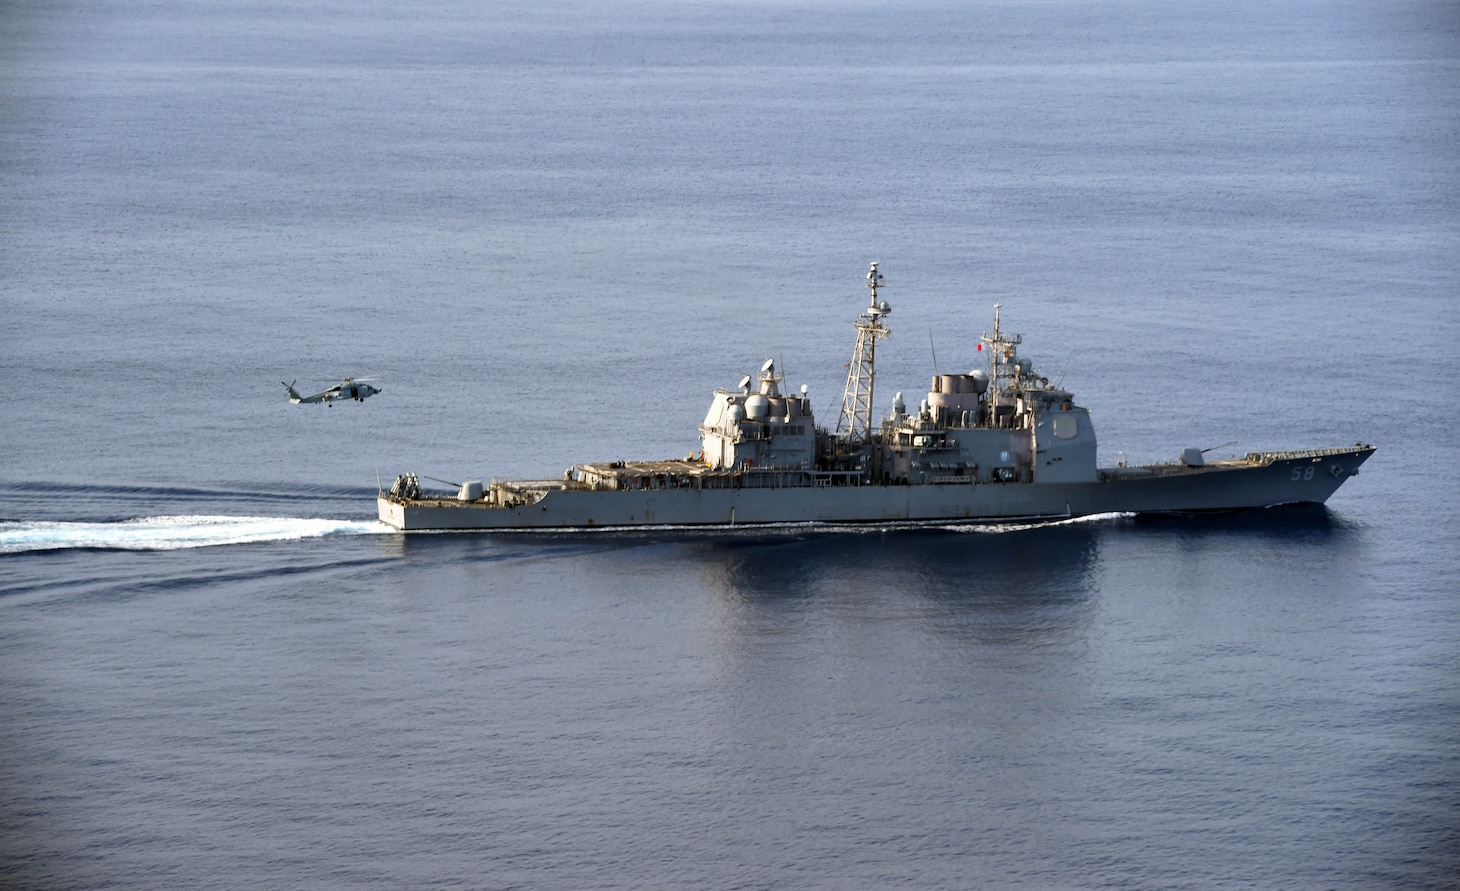 The Ticonderoga-class guided-missile cruiser USS Philippine Sea (CG 58) participates in a vertical replenishment-at-sea exercise with a Sikorsky Seahawk helicopter assigned to the Spanish frigate Álvaro de Bazán (F 101) in the Mediterranean Sea, Aug. 26, 2020. Philippine Sea is currently deployed to the U.S. 6th Fleet area of operations in support of regional allies and partners and U.S. national security interests in Europe and Africa.